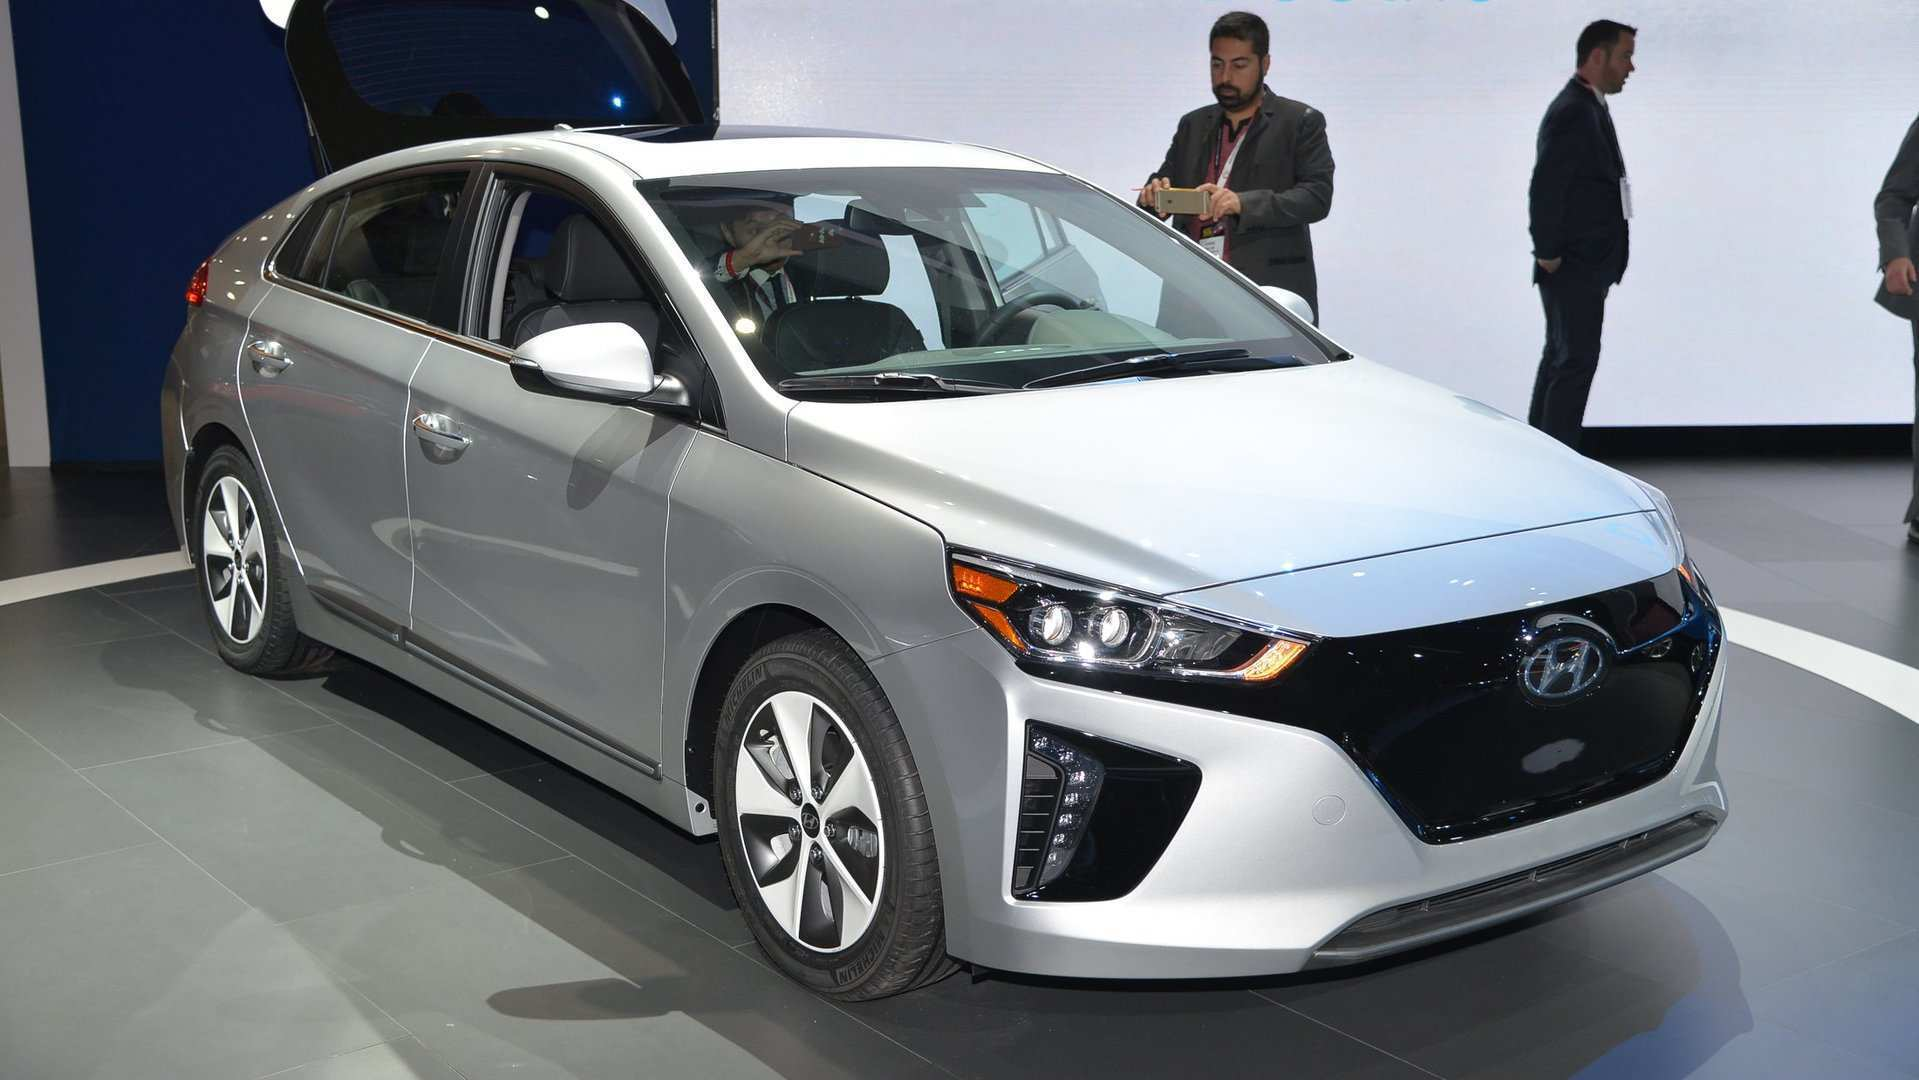 60 New 2020 Hyundai Ioniq Reviews with 2020 Hyundai Ioniq